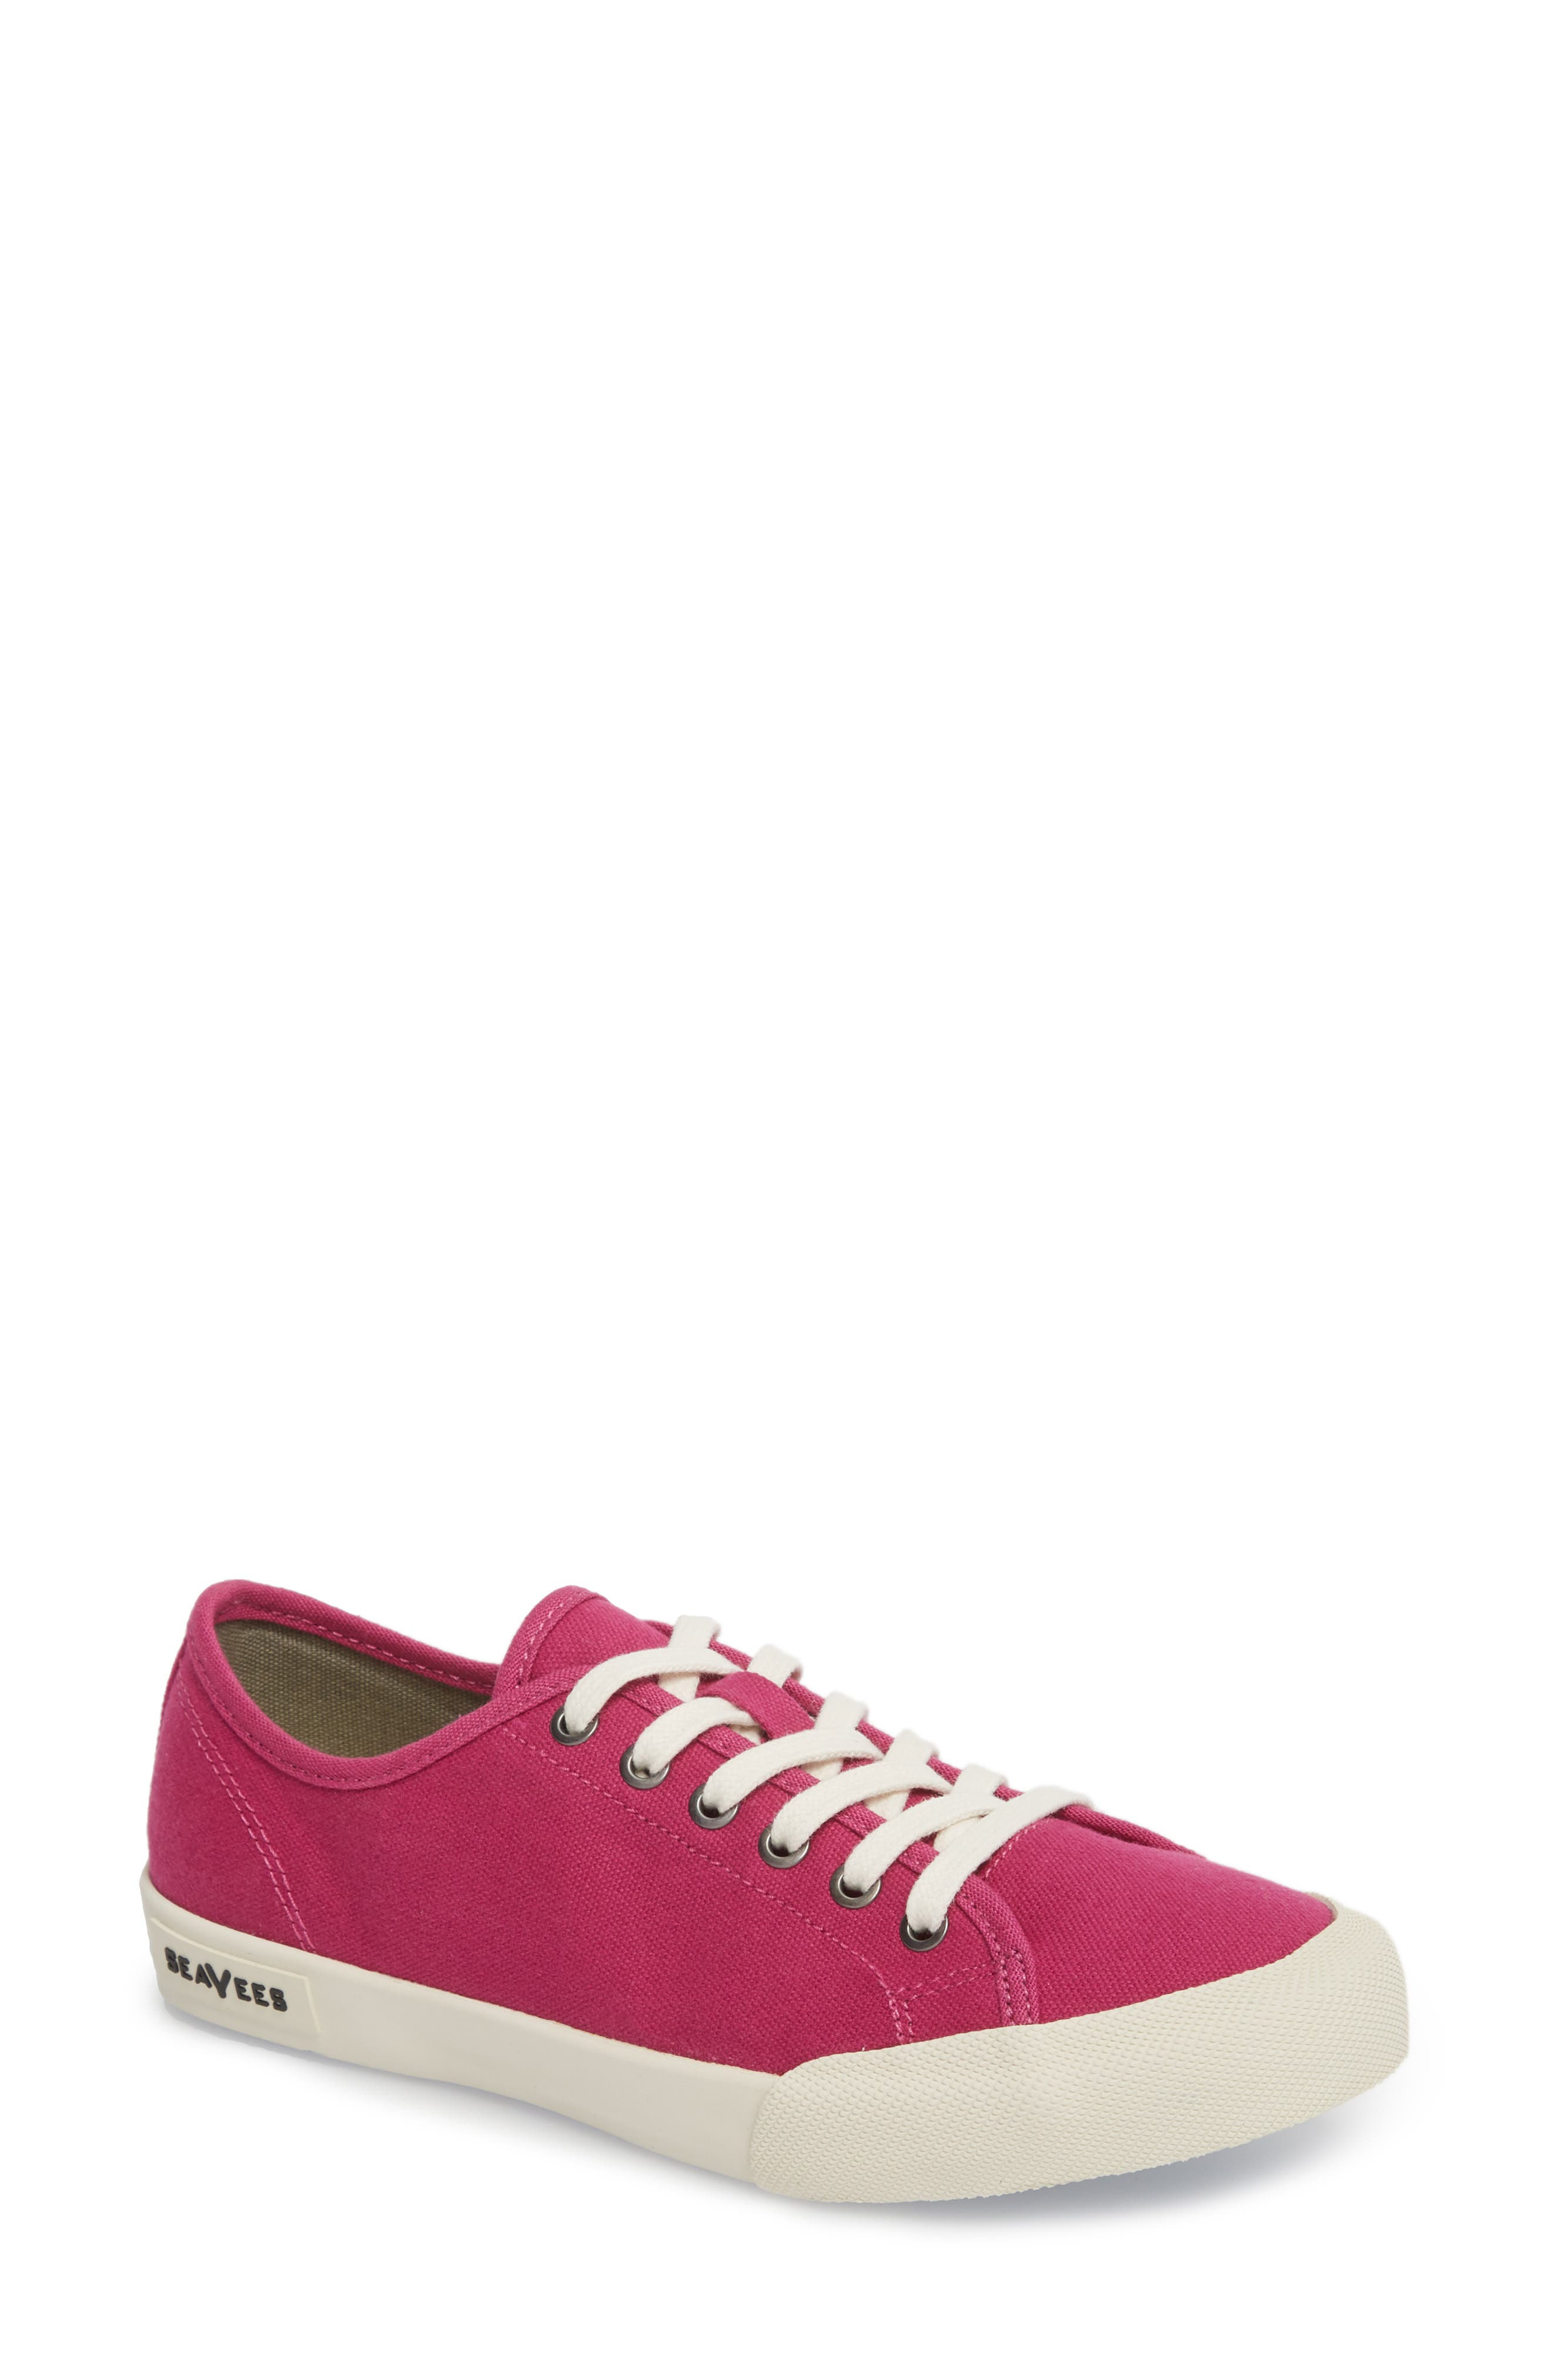 Only Shiny Sneakers Women pink